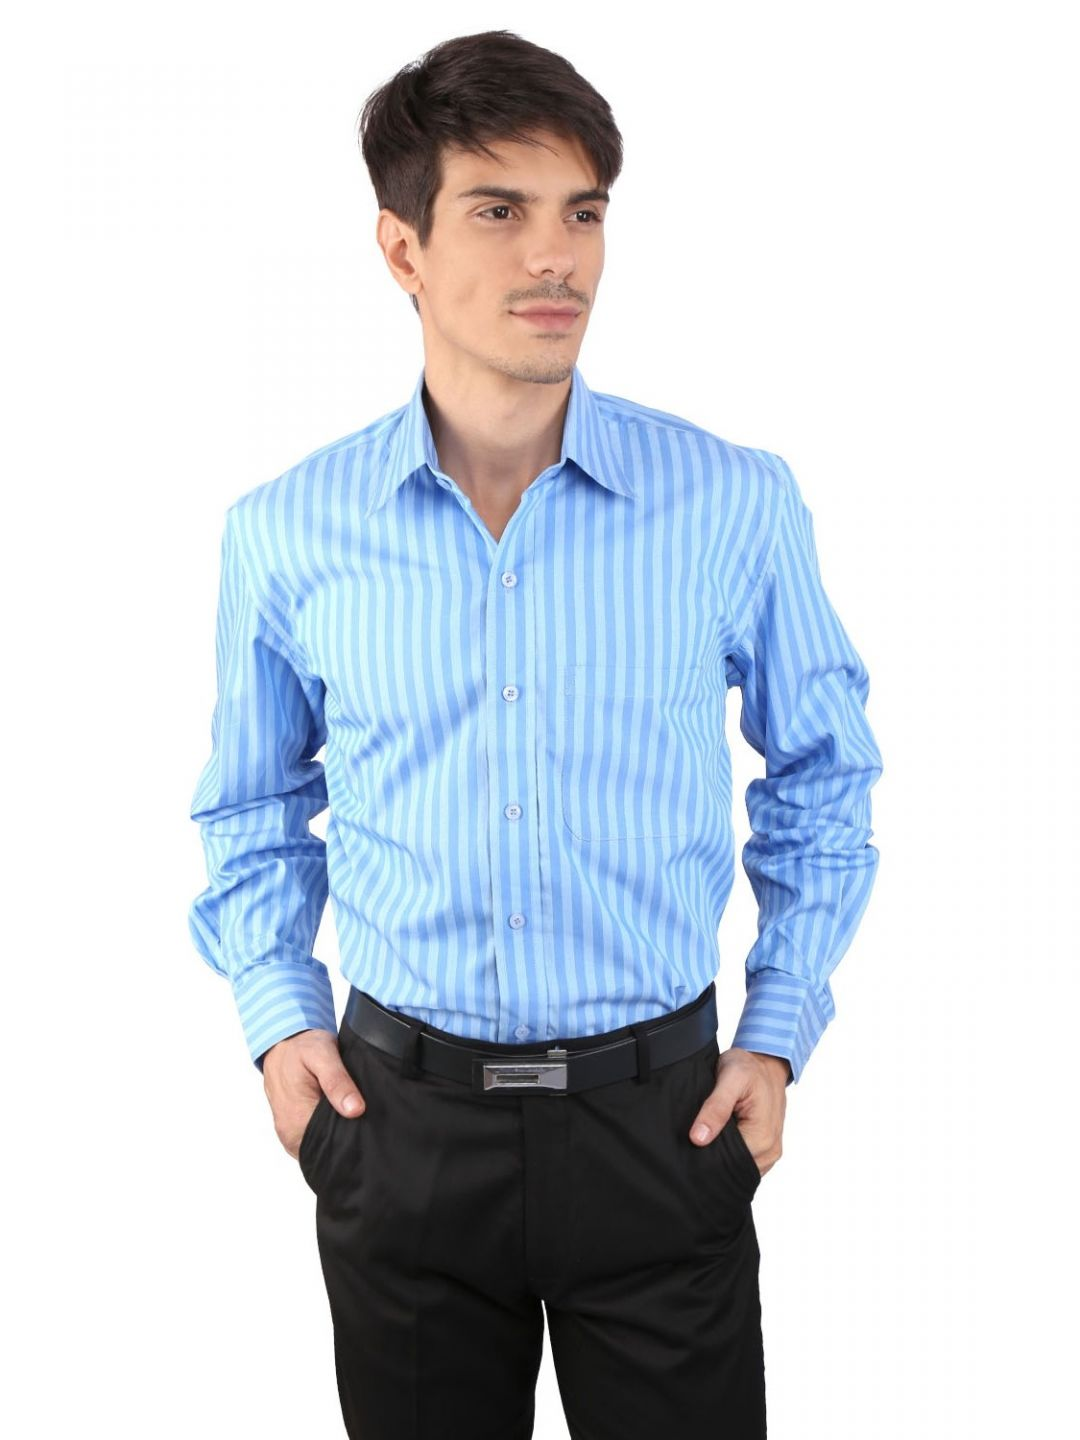 JAPs Men's Blue Striped Formal Shirt